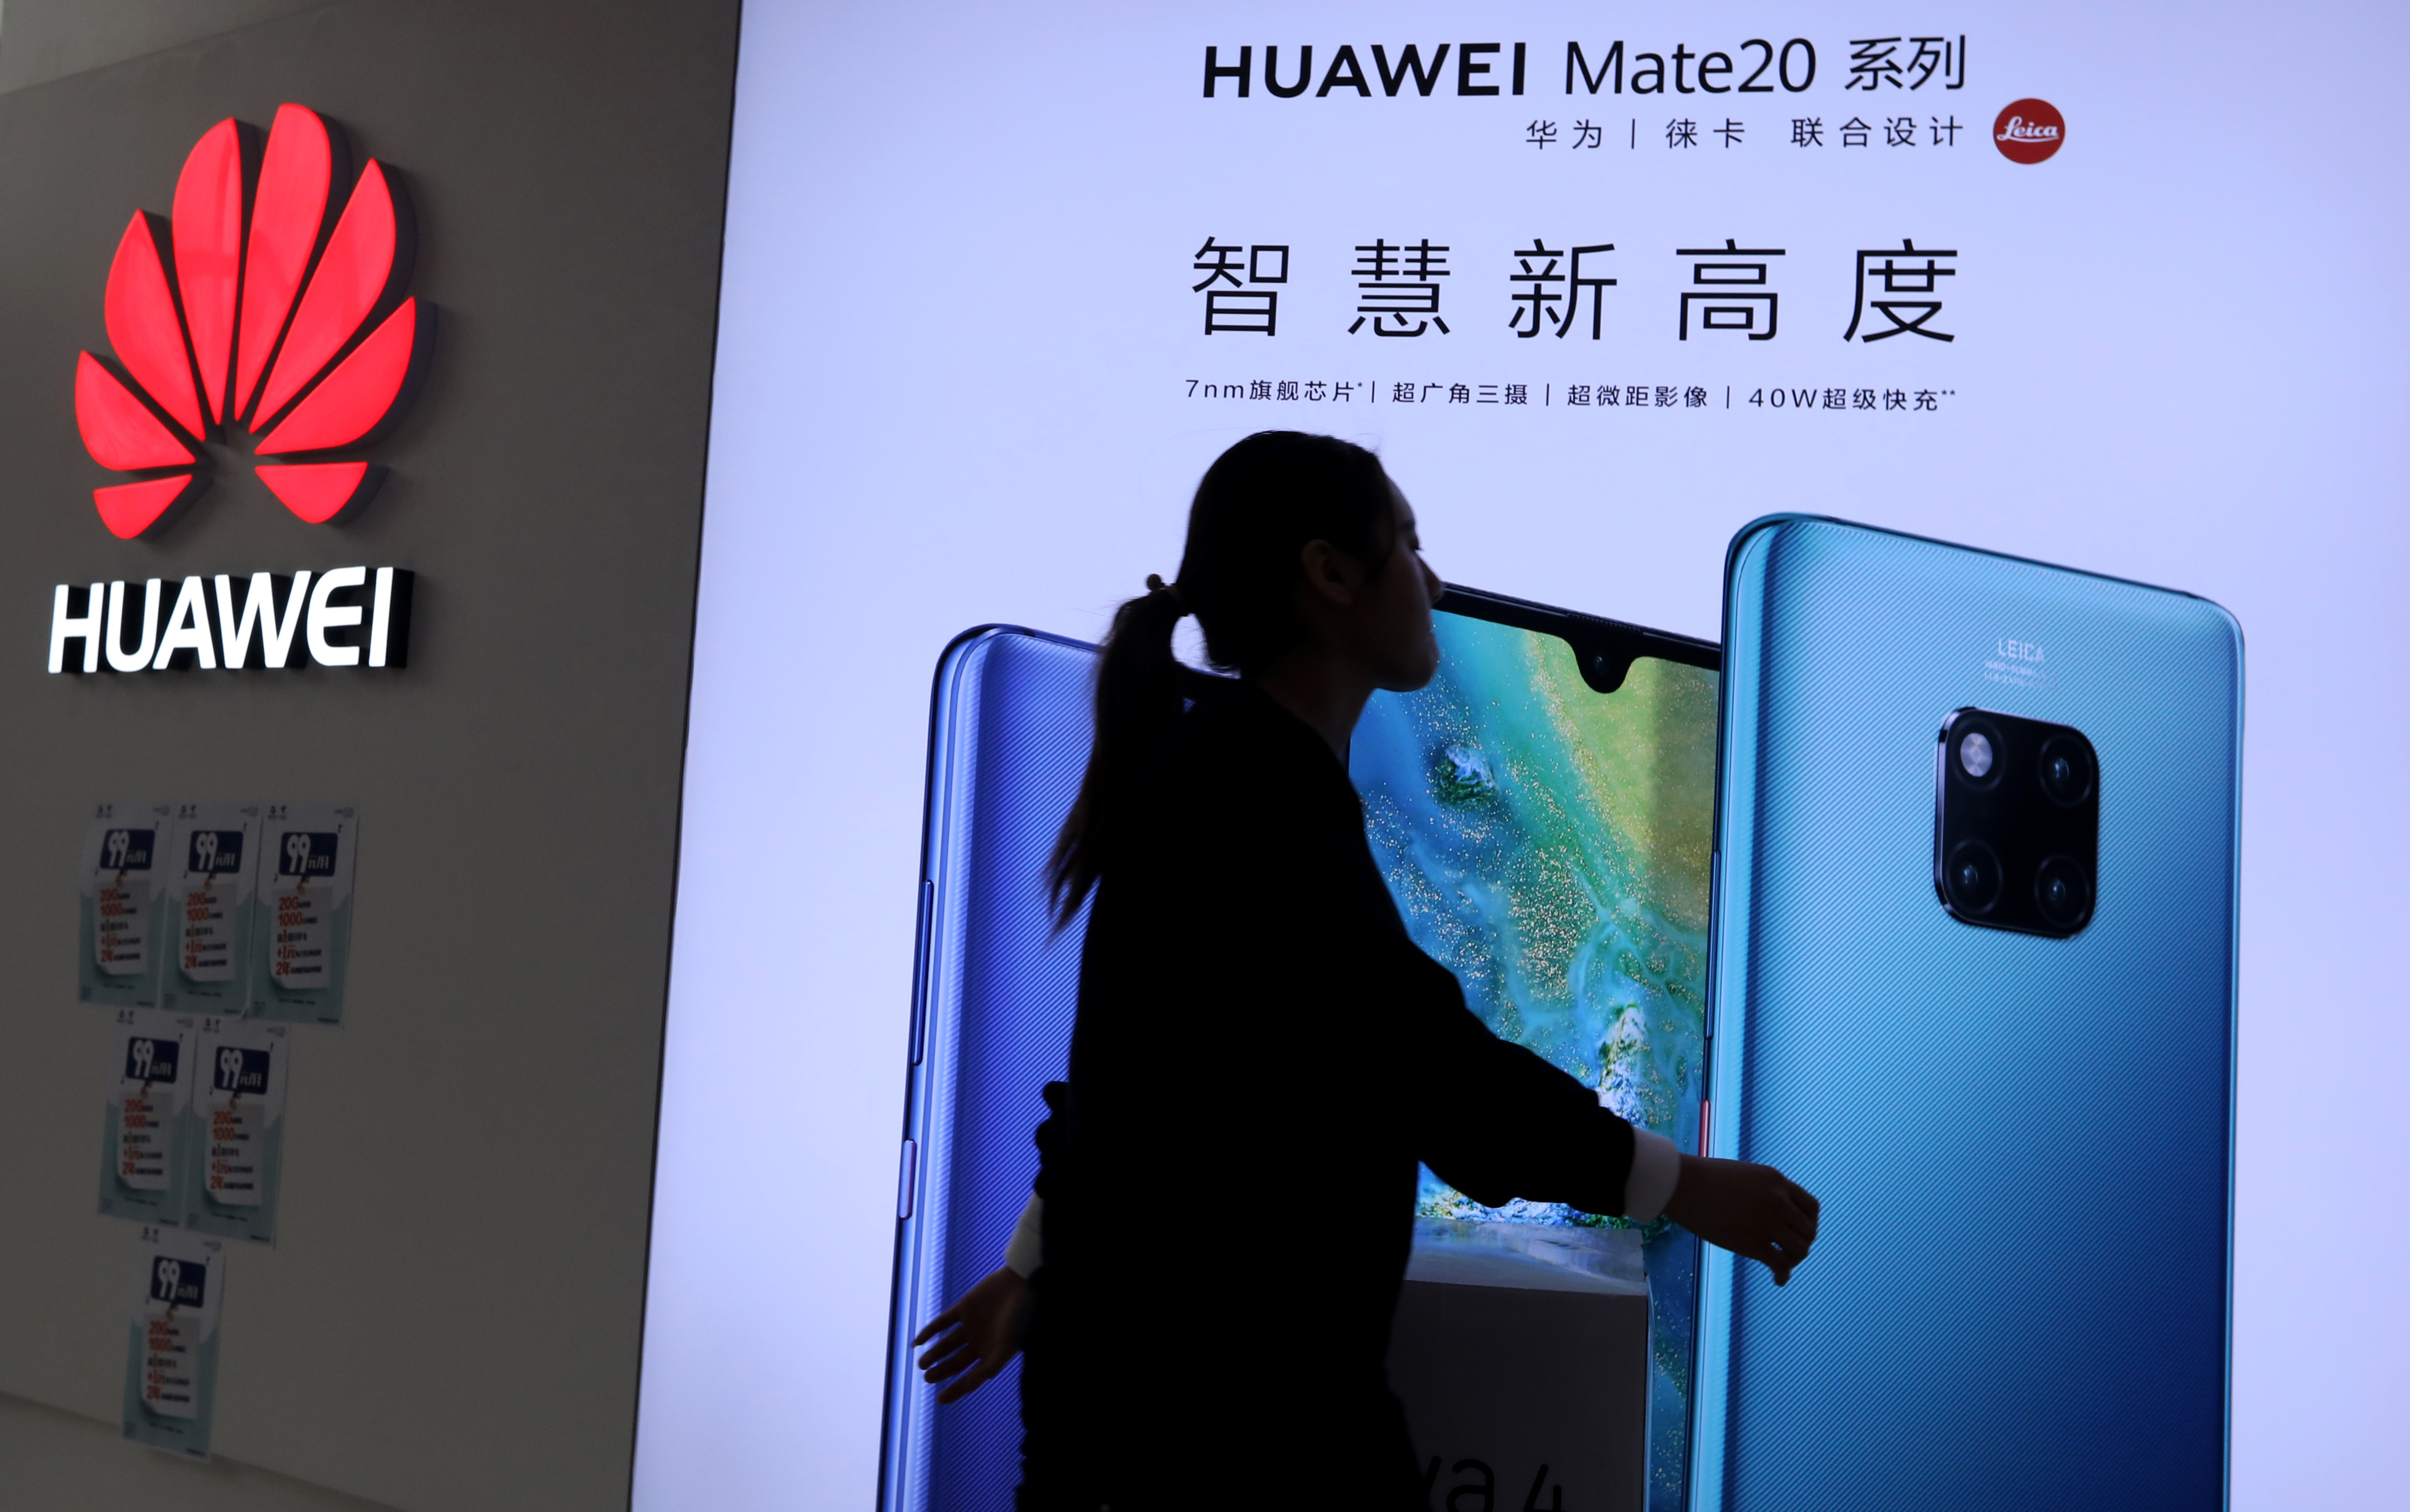 Huawei likely faces 5G ban in Canada, security experts say